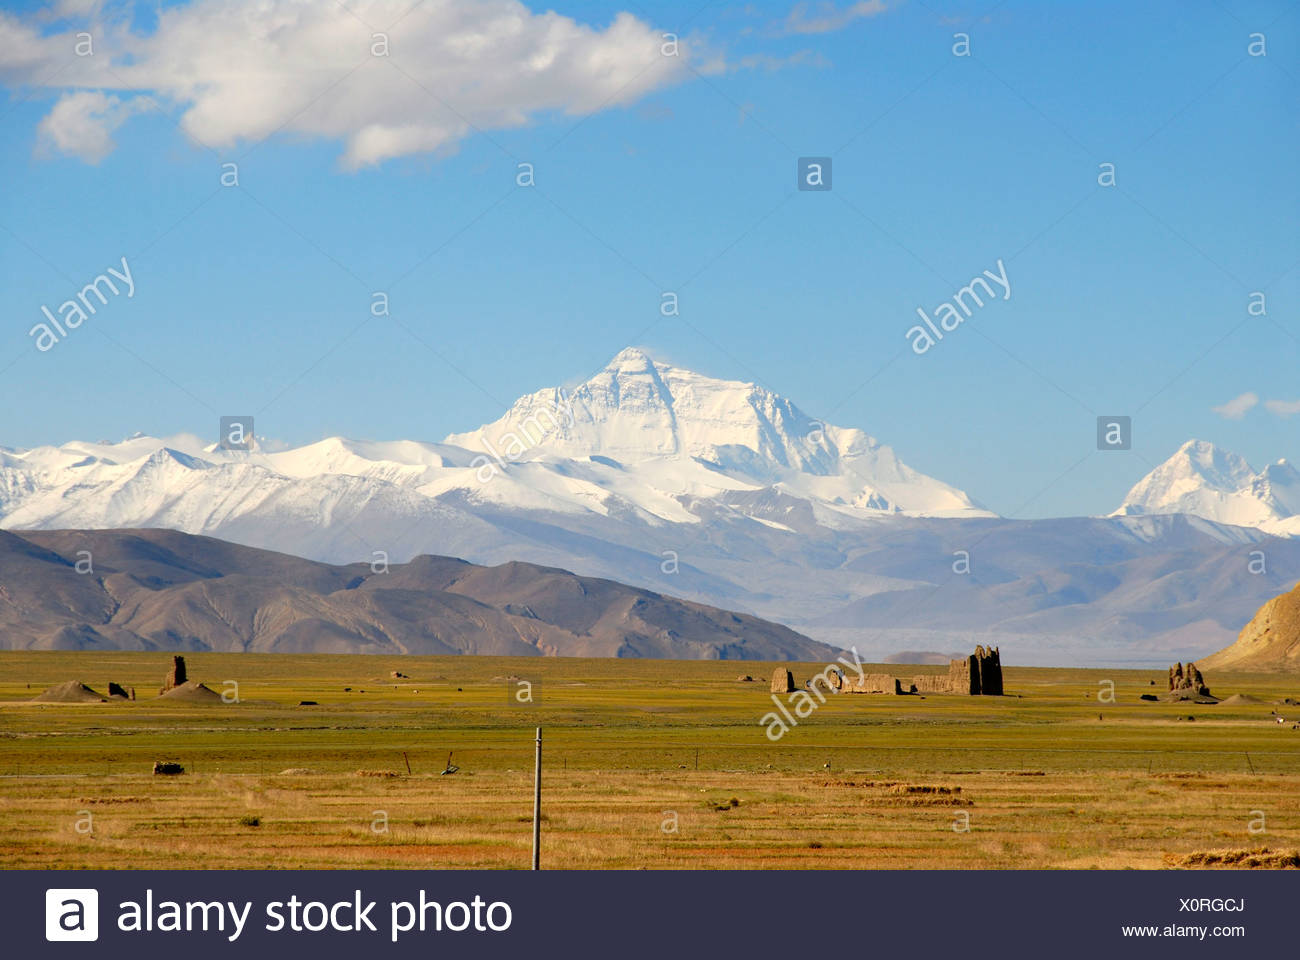 View towards the entire massif of Mount Everest, ruins in the valley near Old Tingri, Himalayas, Central Tibet, U-Tsang - Stock Image